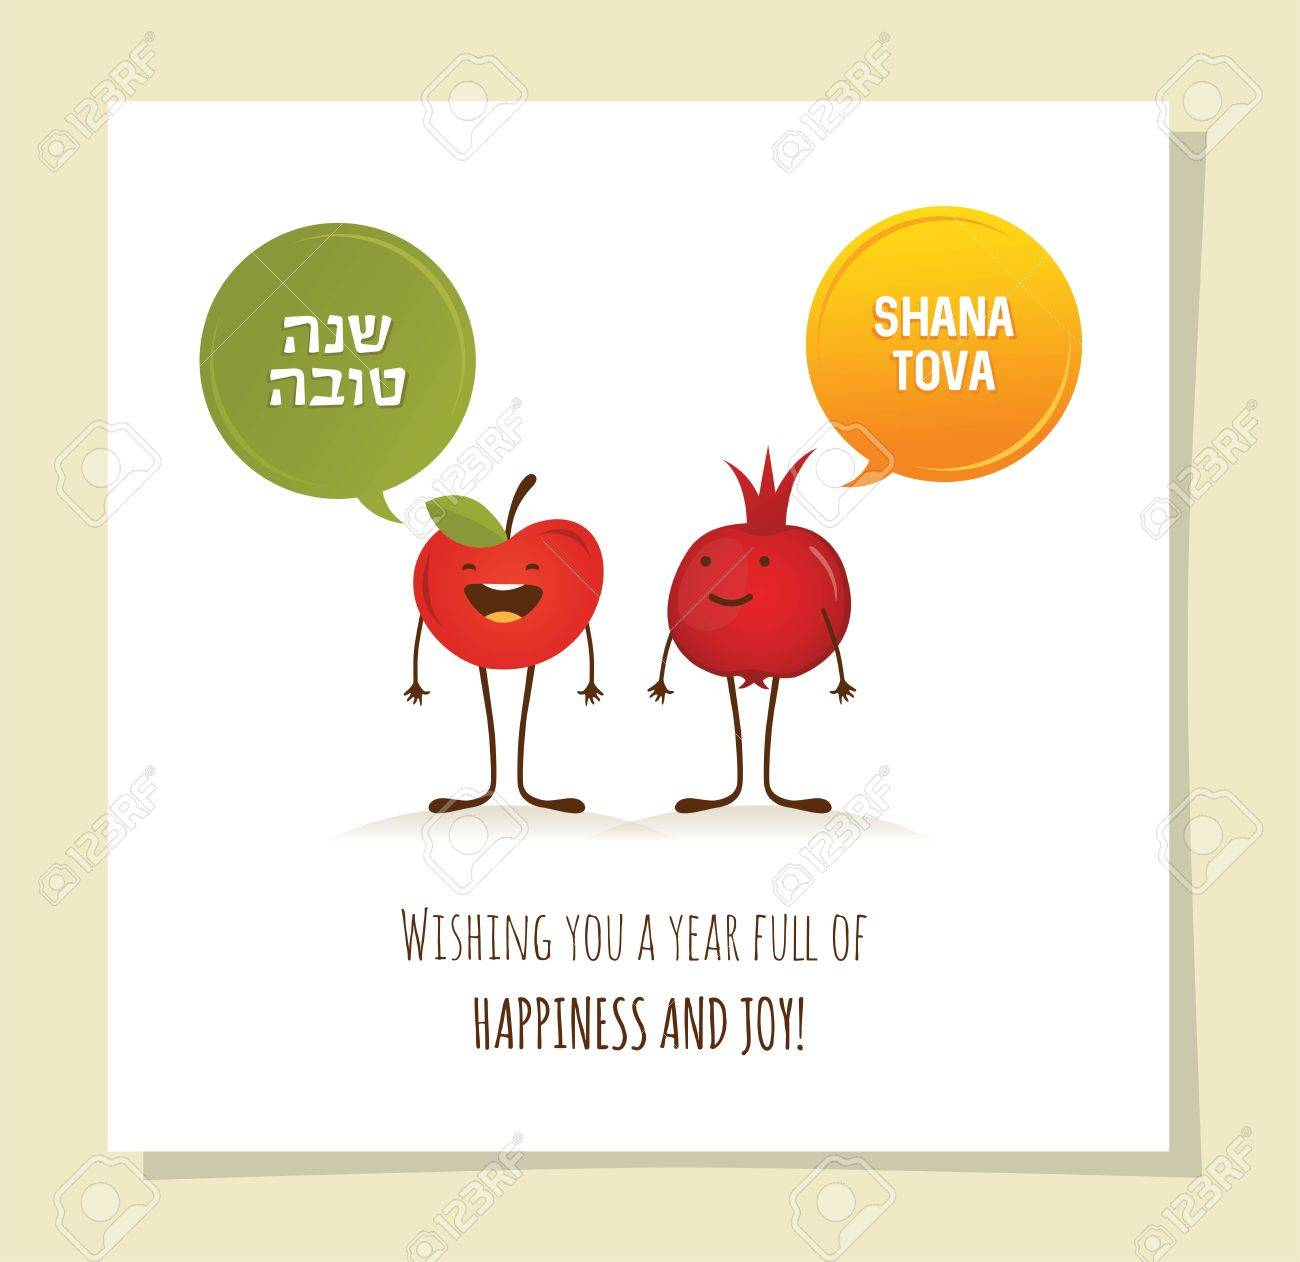 Funny Apple And Pomegranate On A Card For Rosh Hashana Jewish New Year Vector